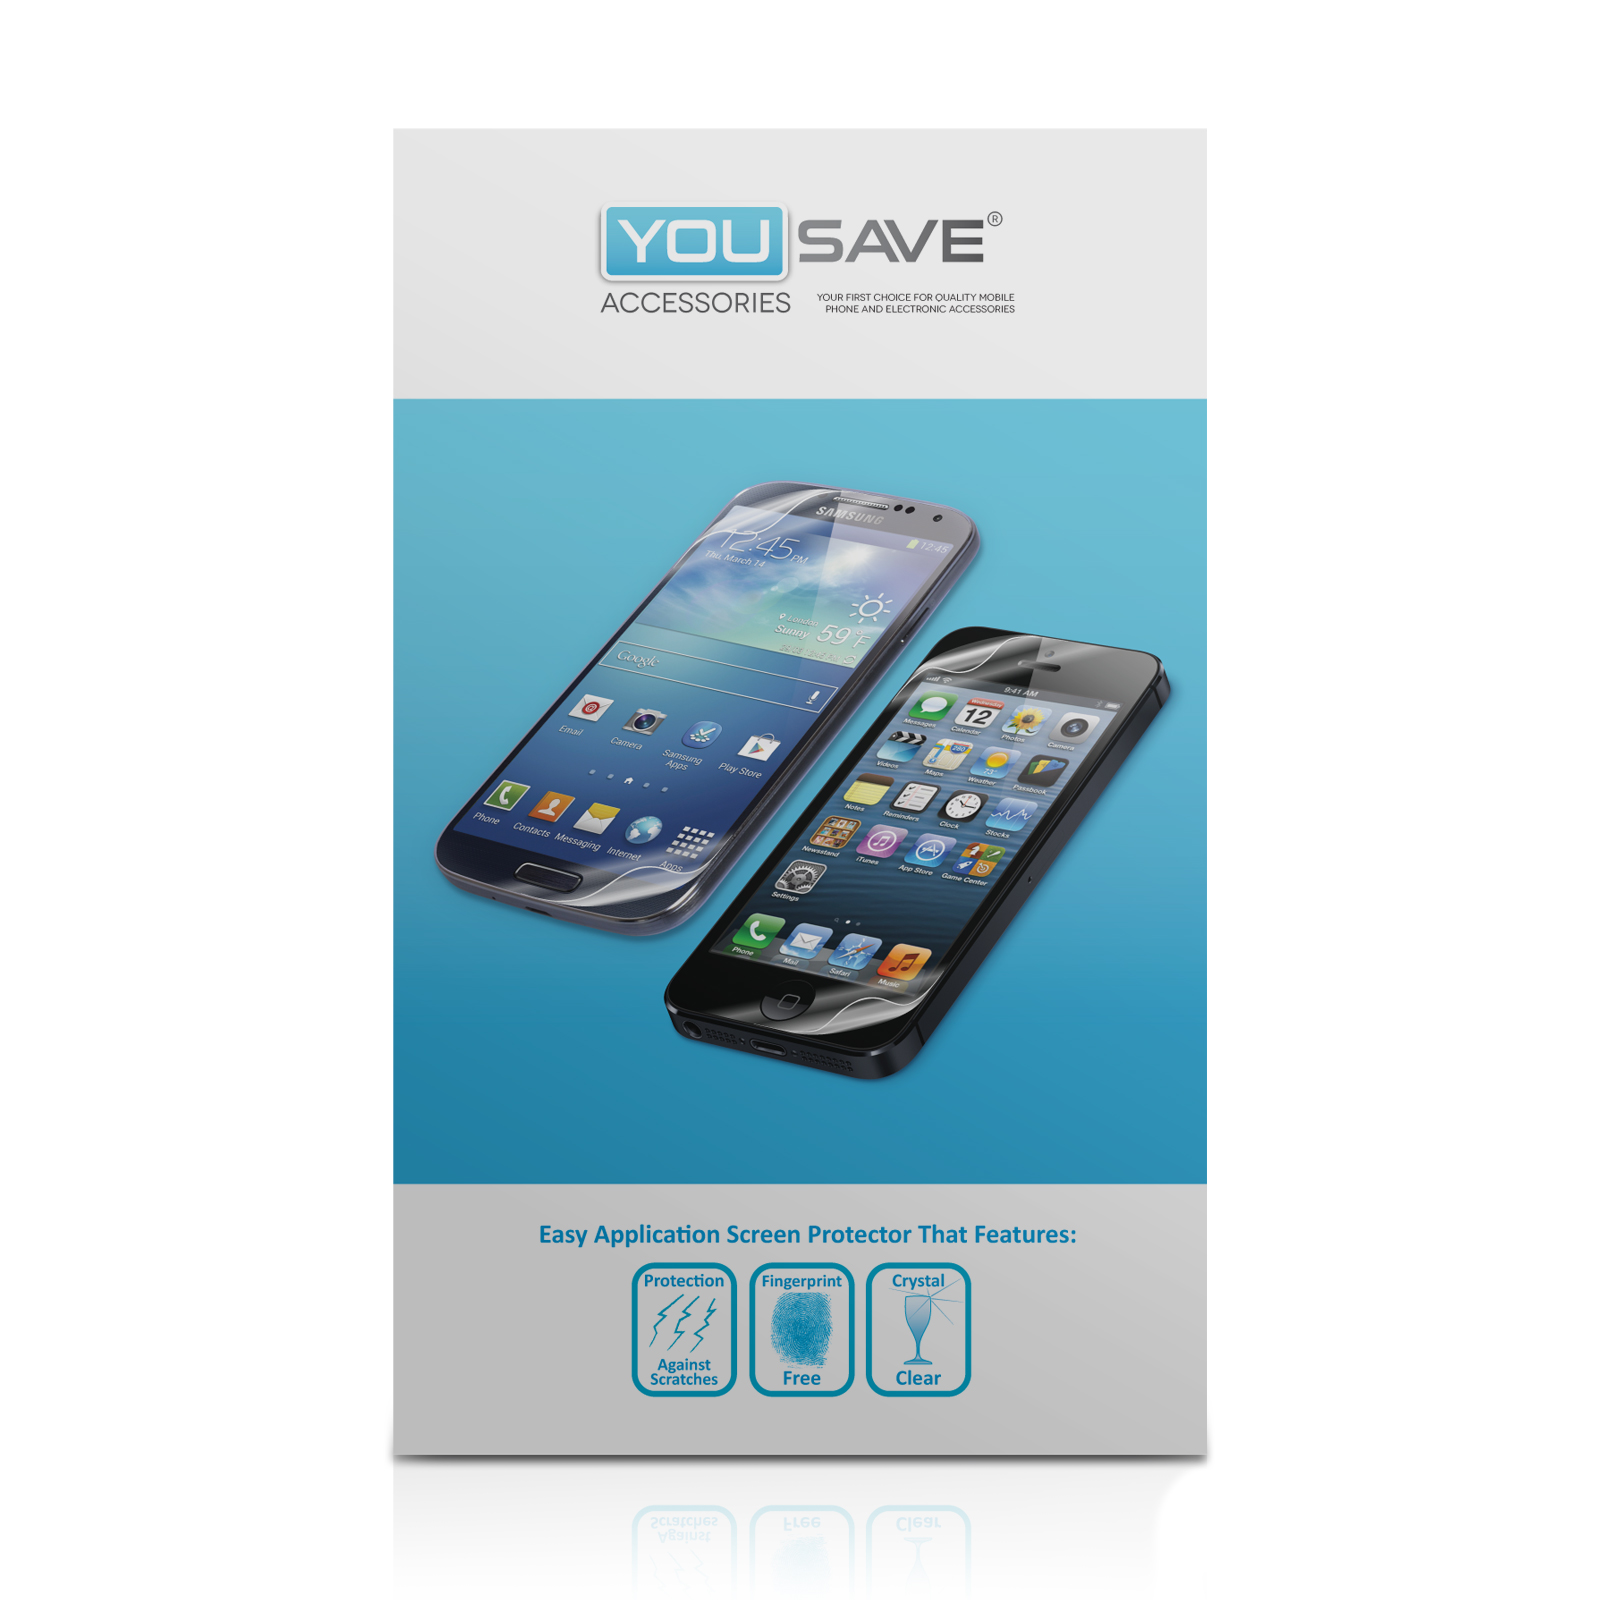 Yousave Blackberry Z10 Screen Protectors - 5 Pack